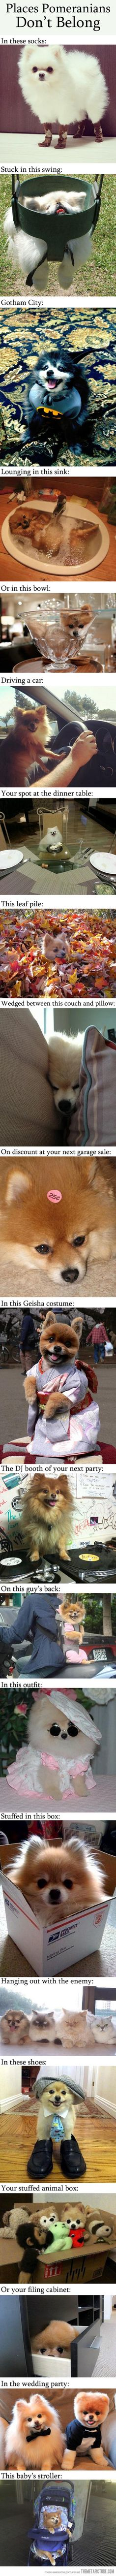 As someone who has been a pomeranian owner my whole life, this is hilarious